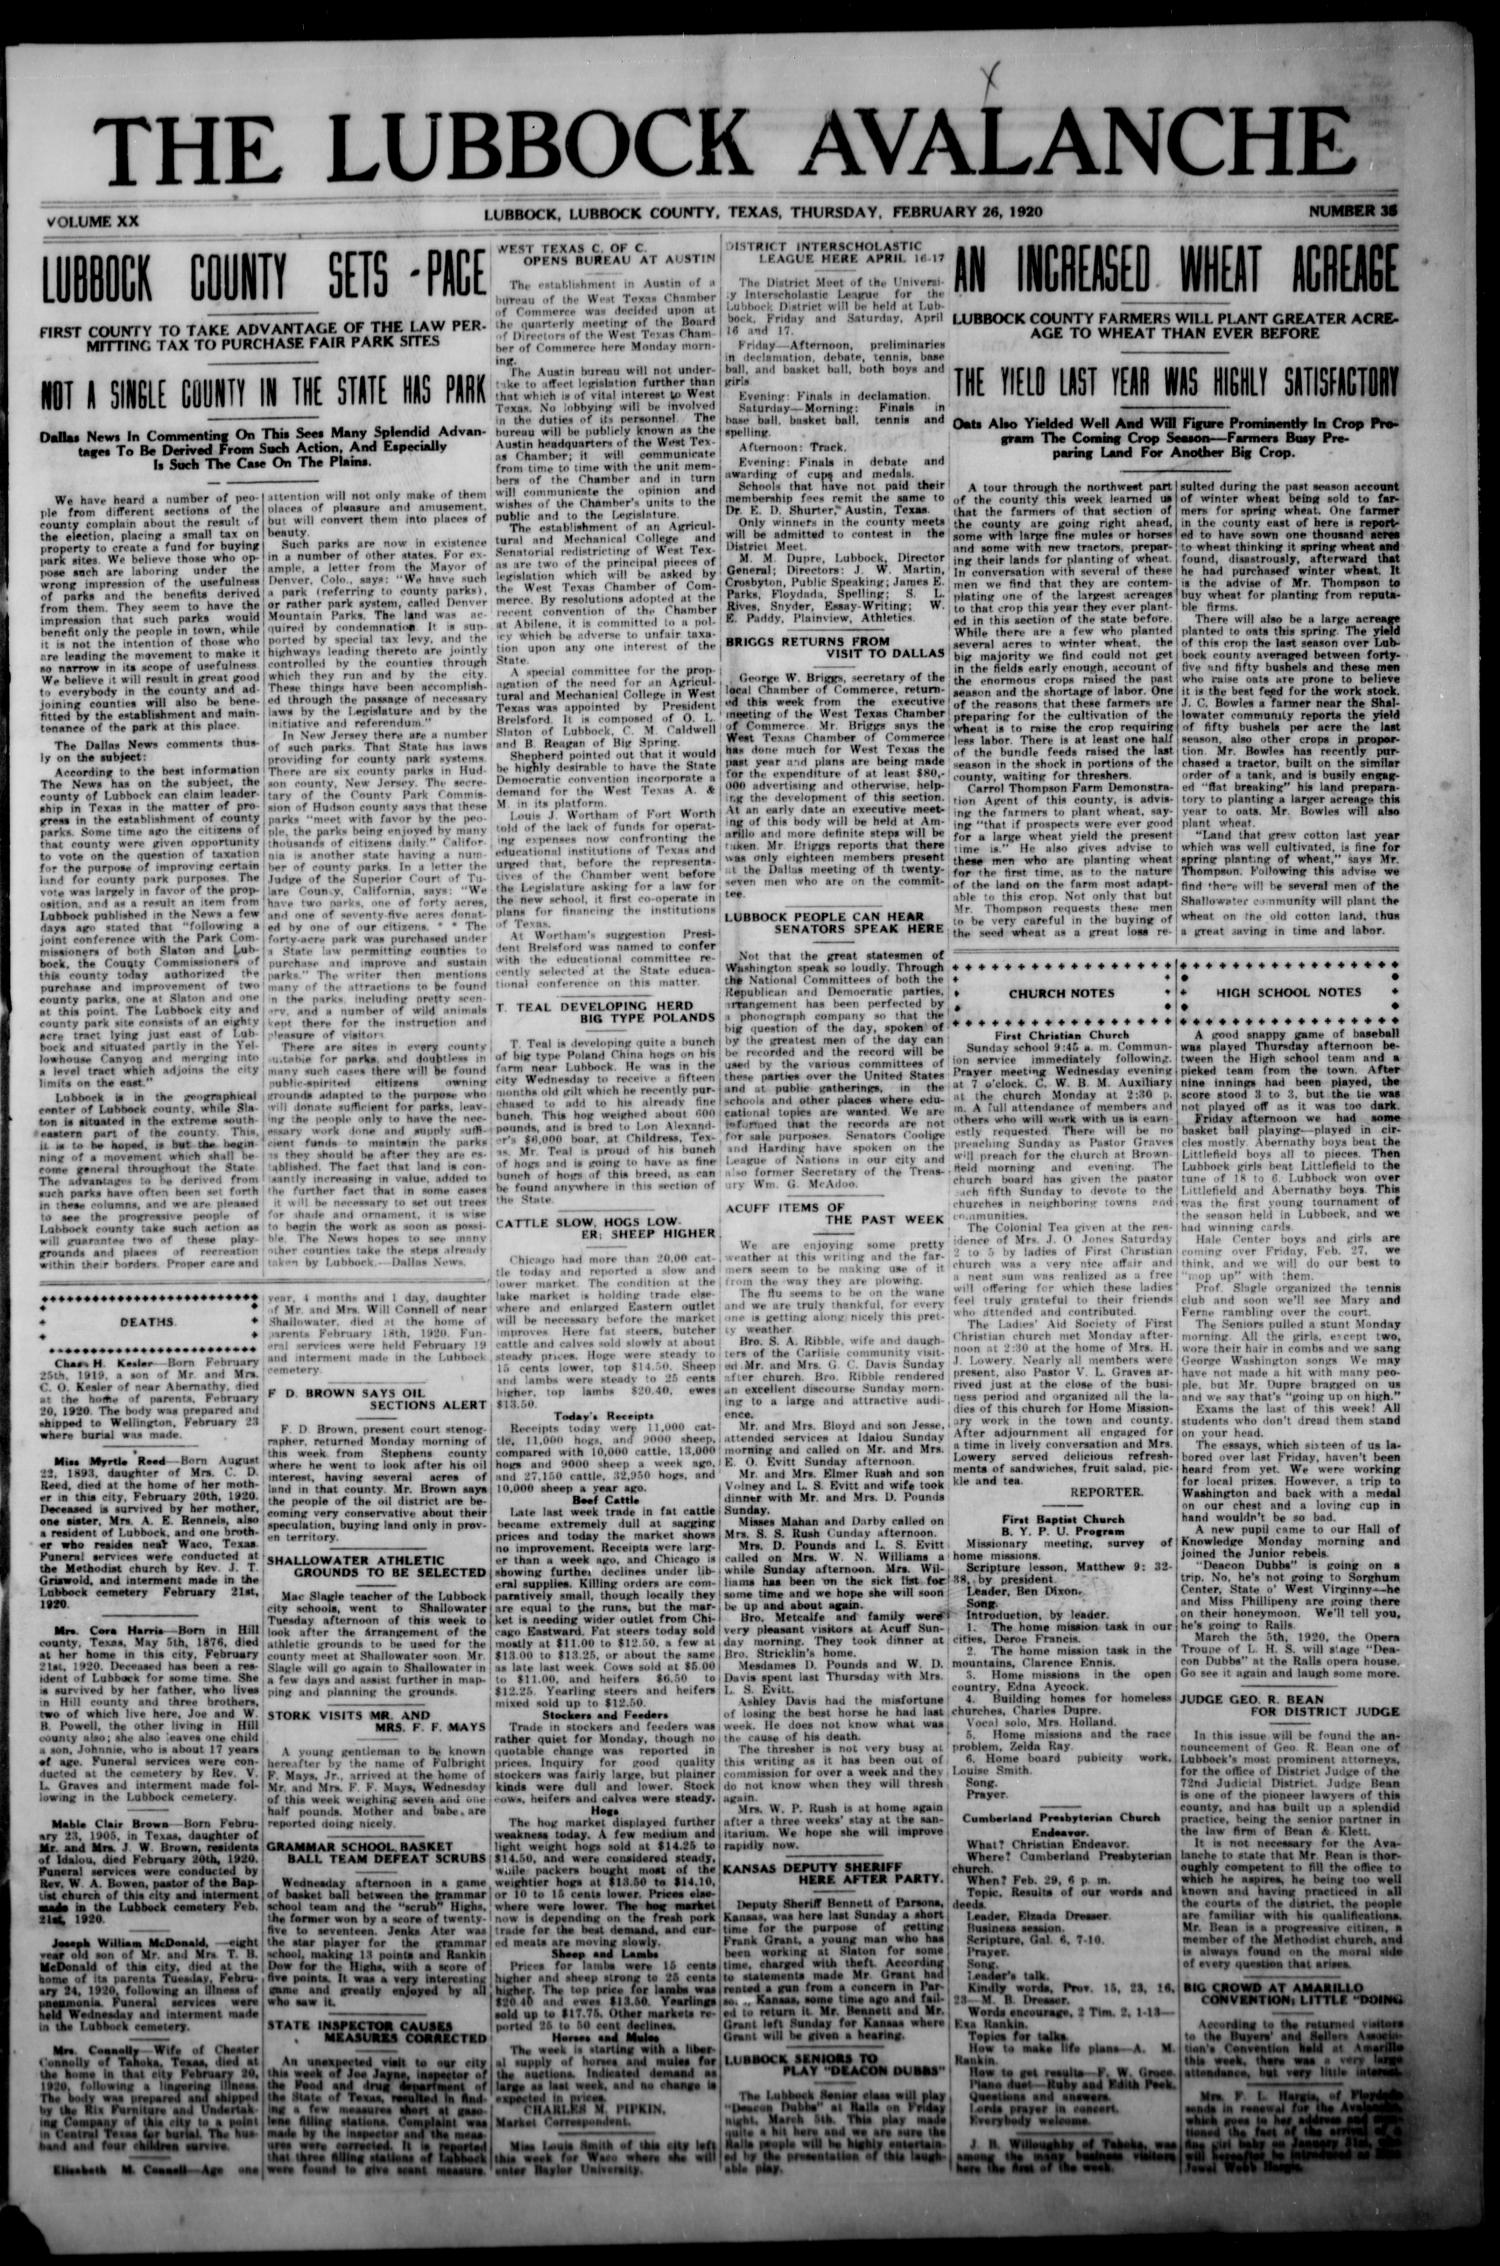 The Lubbock Avalanche. (Lubbock, Texas), Vol. 20, No. 35, Ed. 1 Thursday, February 26, 1920                                                                                                      [Sequence #]: 1 of 20